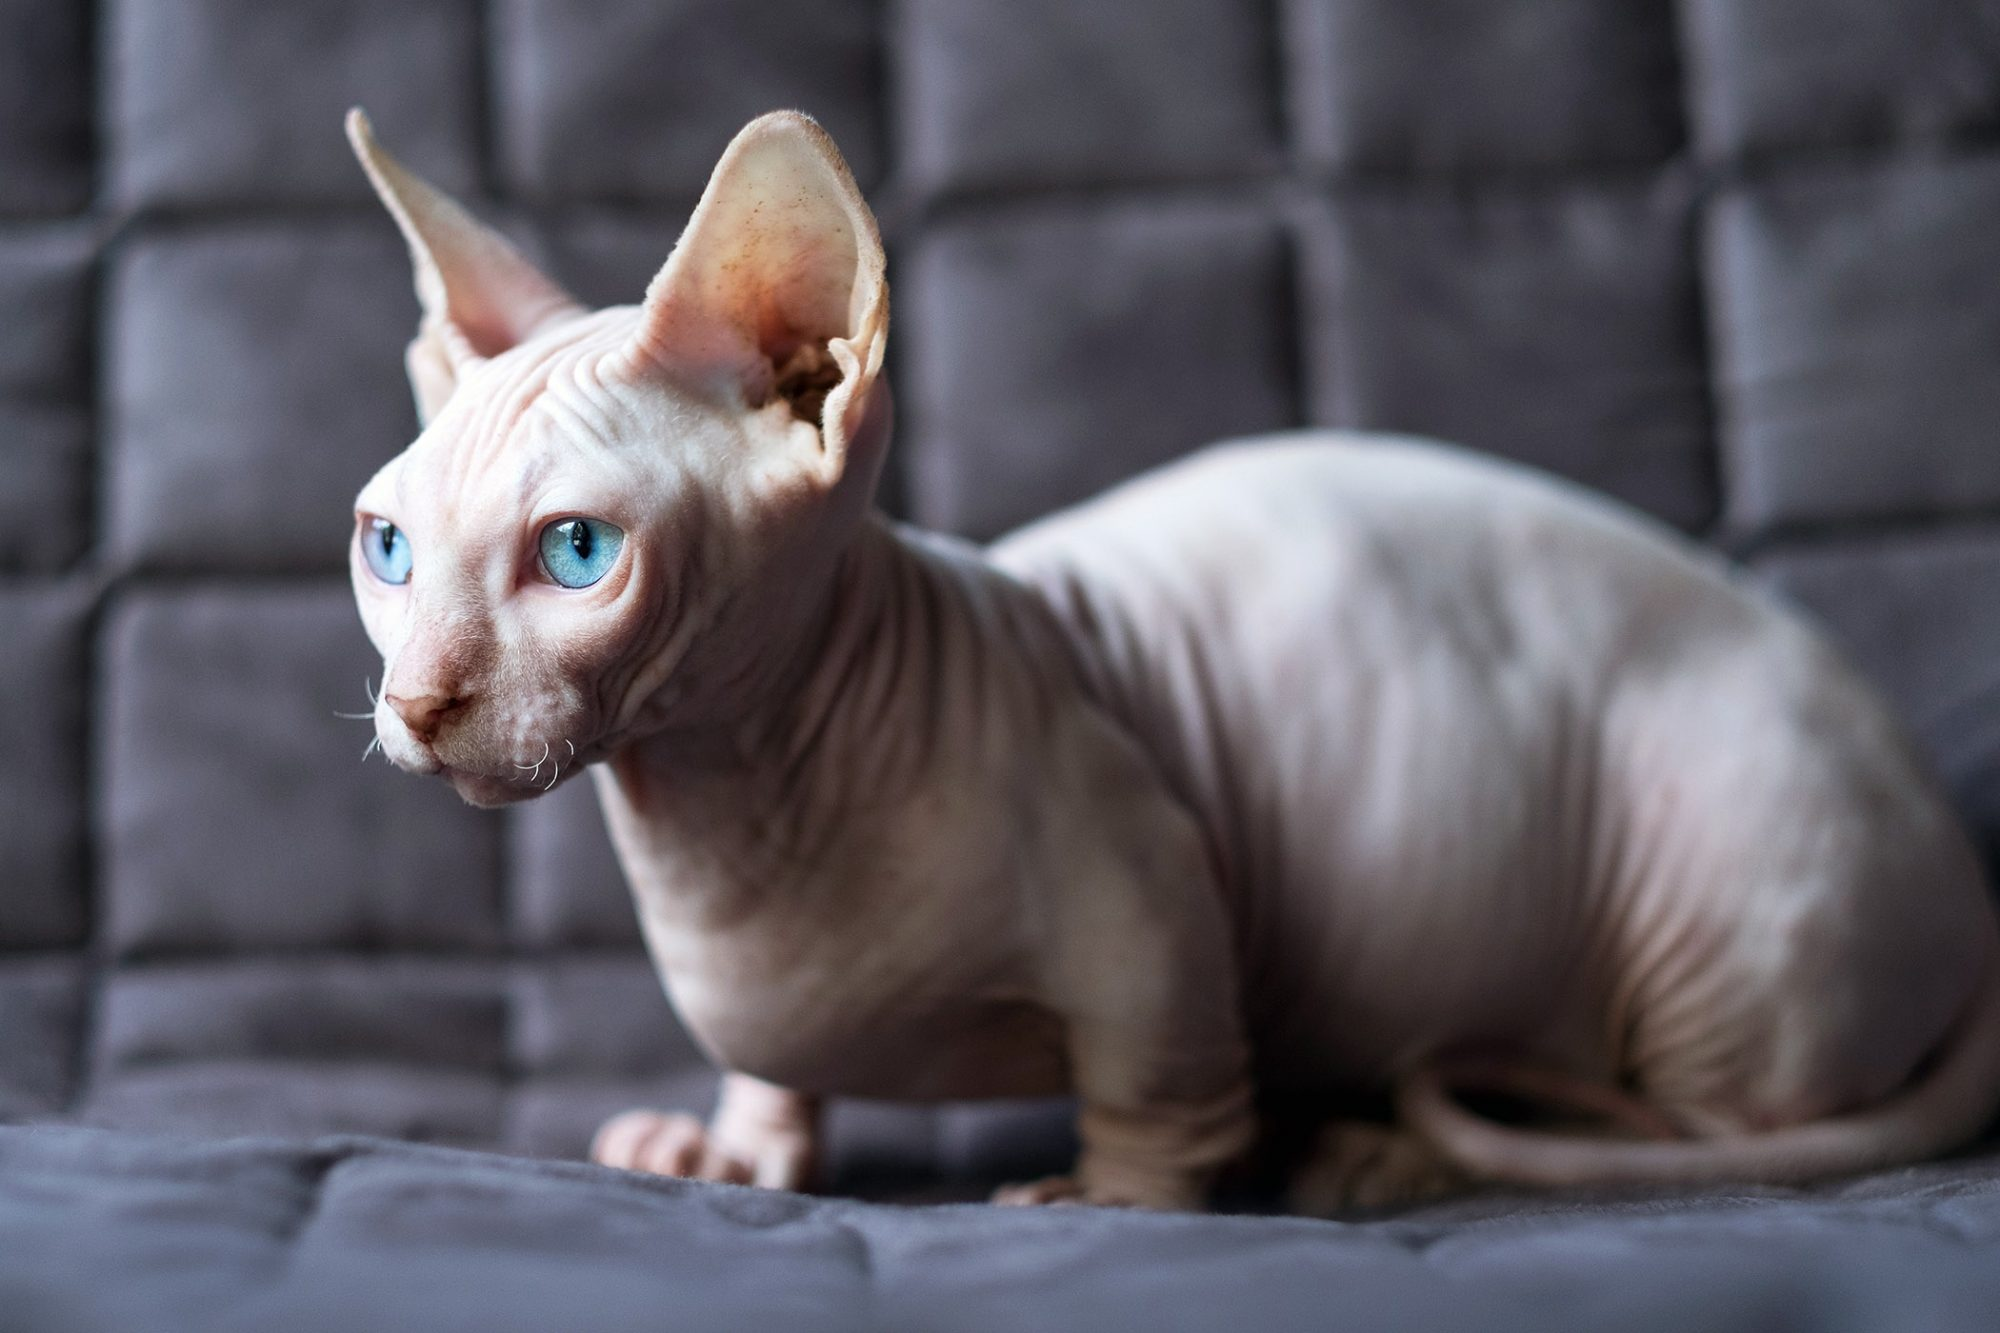 bambino hairless cat on couch